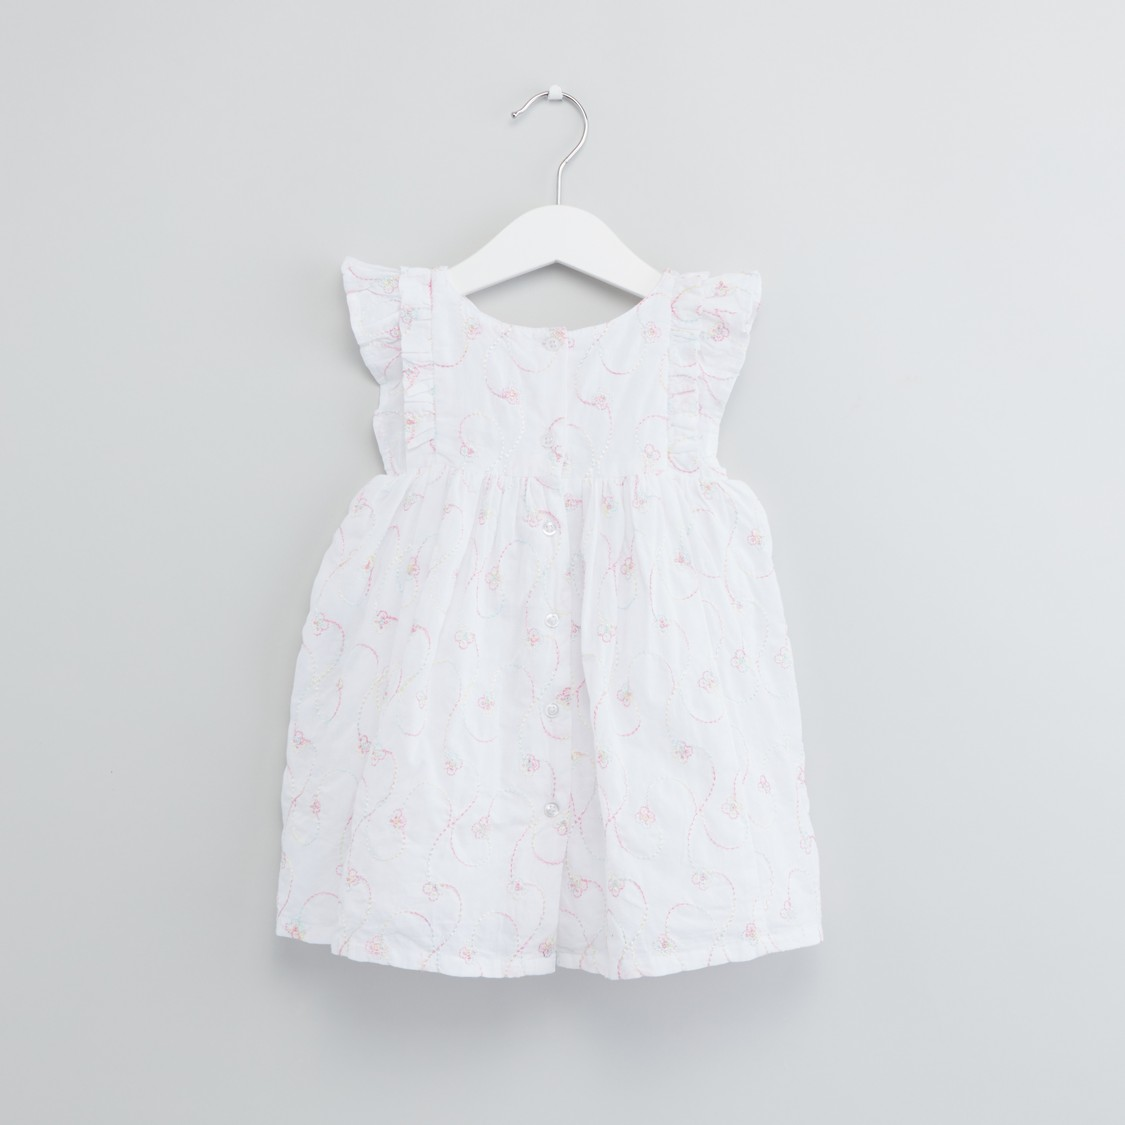 Embroidered Round Neck Dress with Ruffled Sleeves and Bloomers